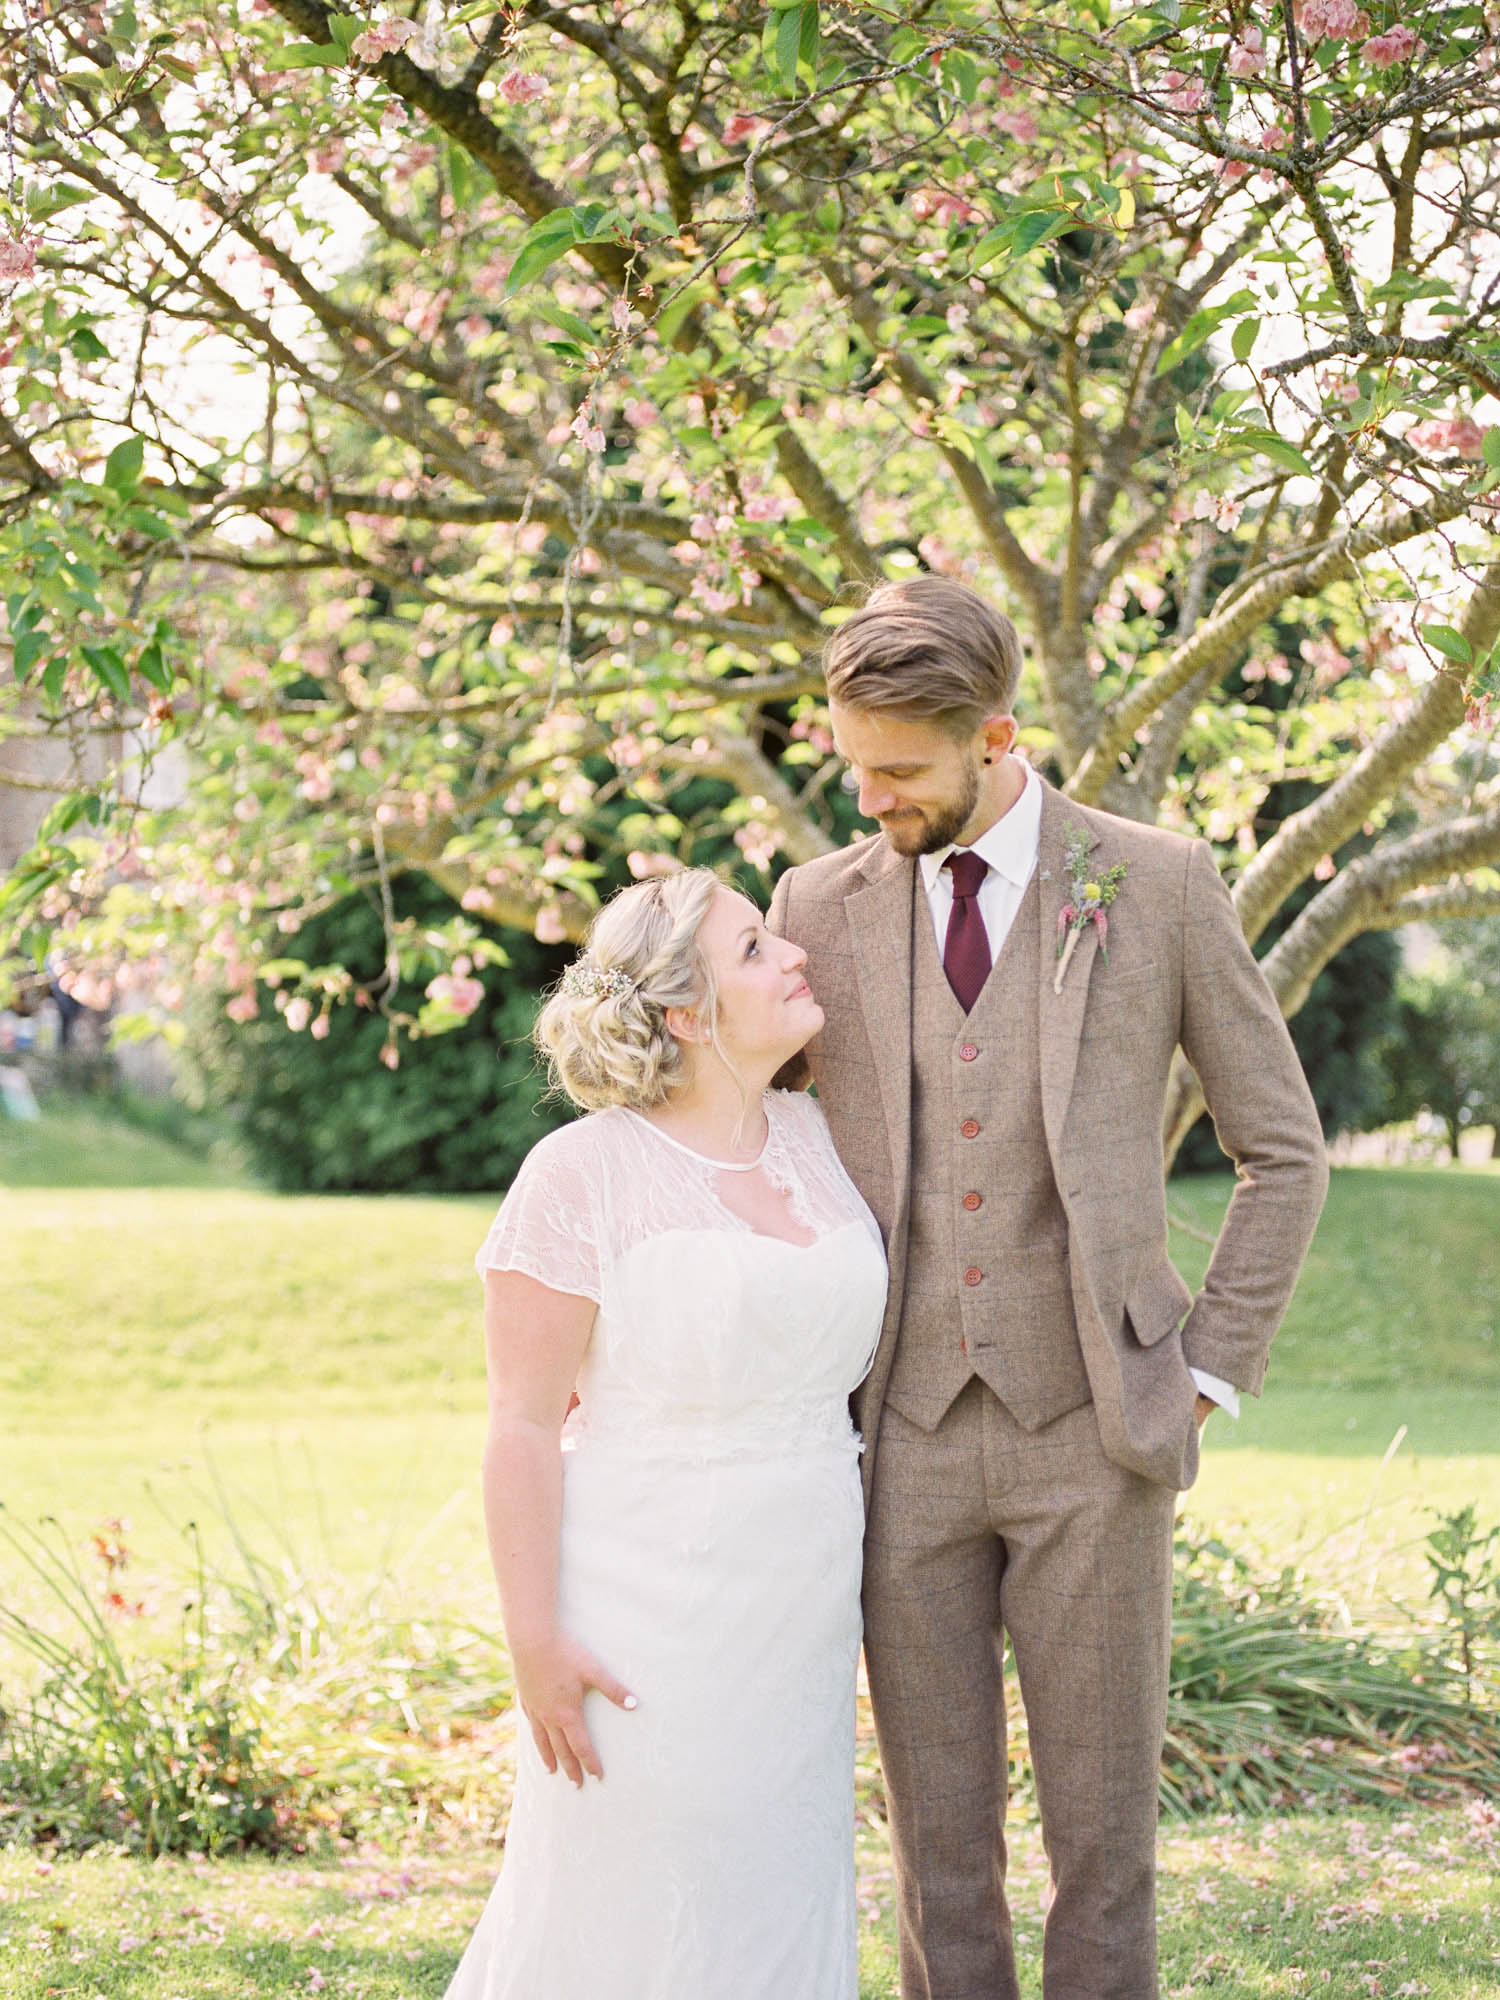 Amy O'Boyle Photography- Destination & UK Fine Art Film Wedding Photographer-46.jpg